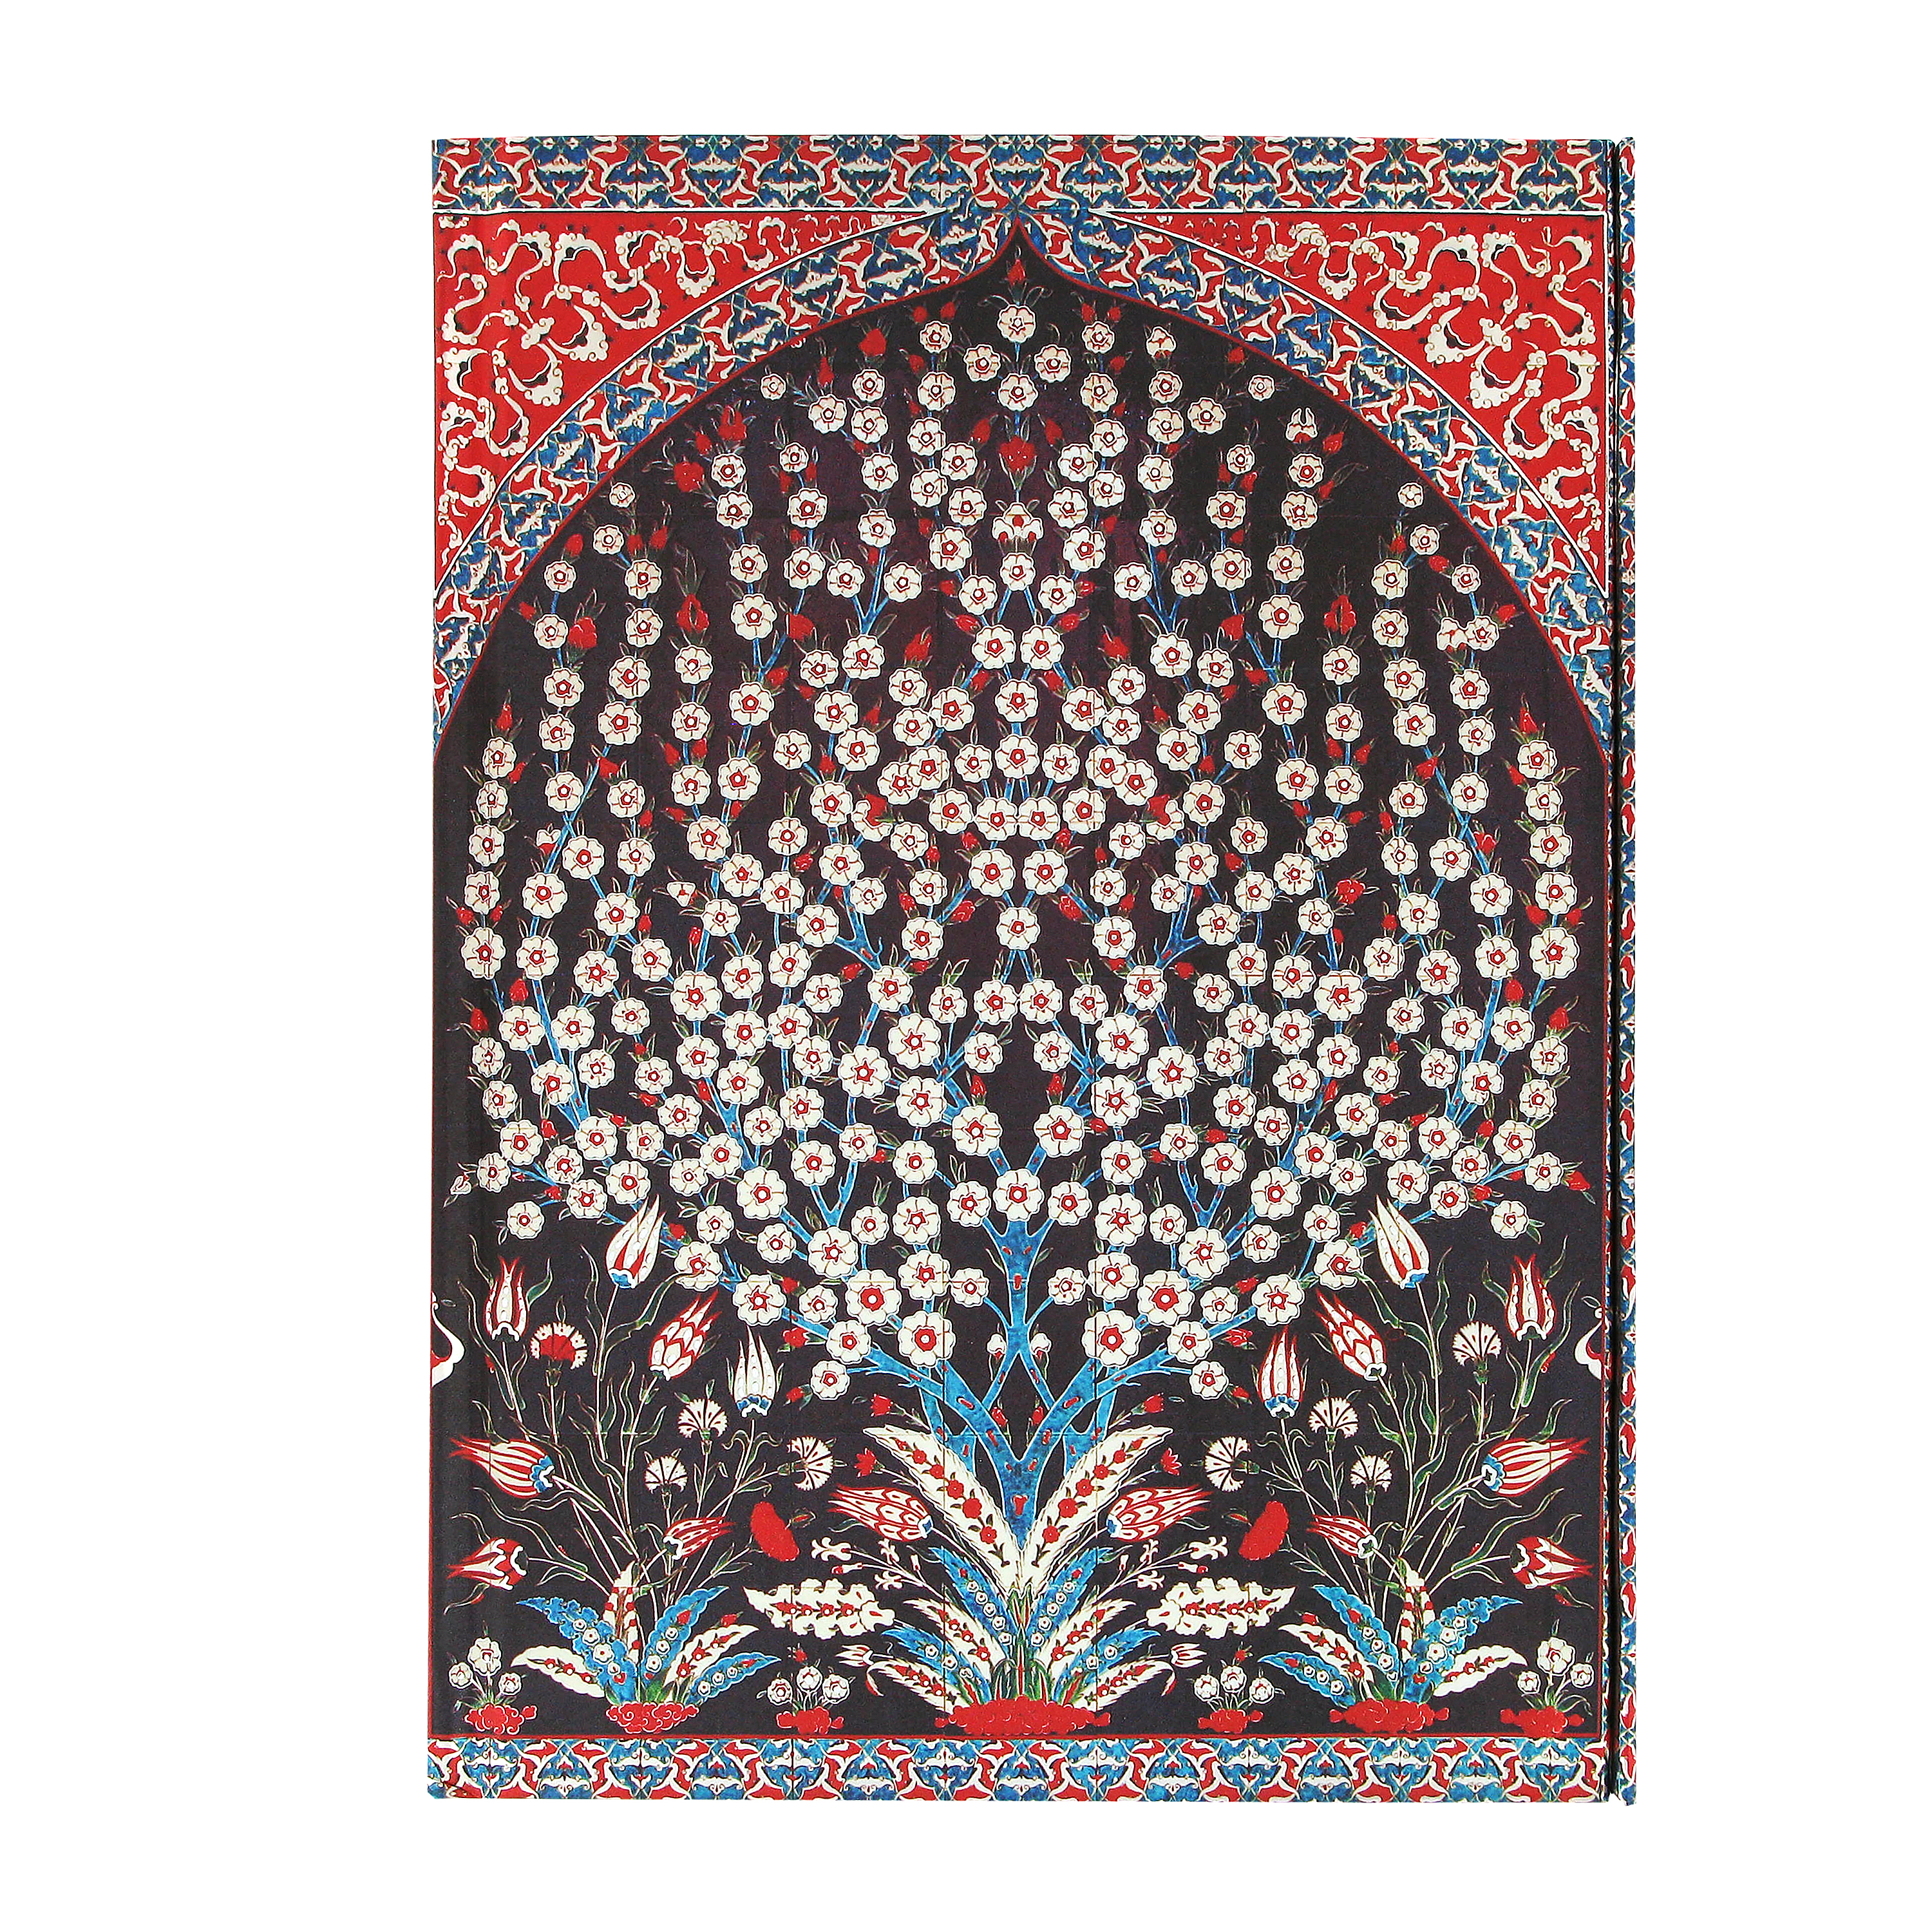 Turkish wall tiles foiled notebook